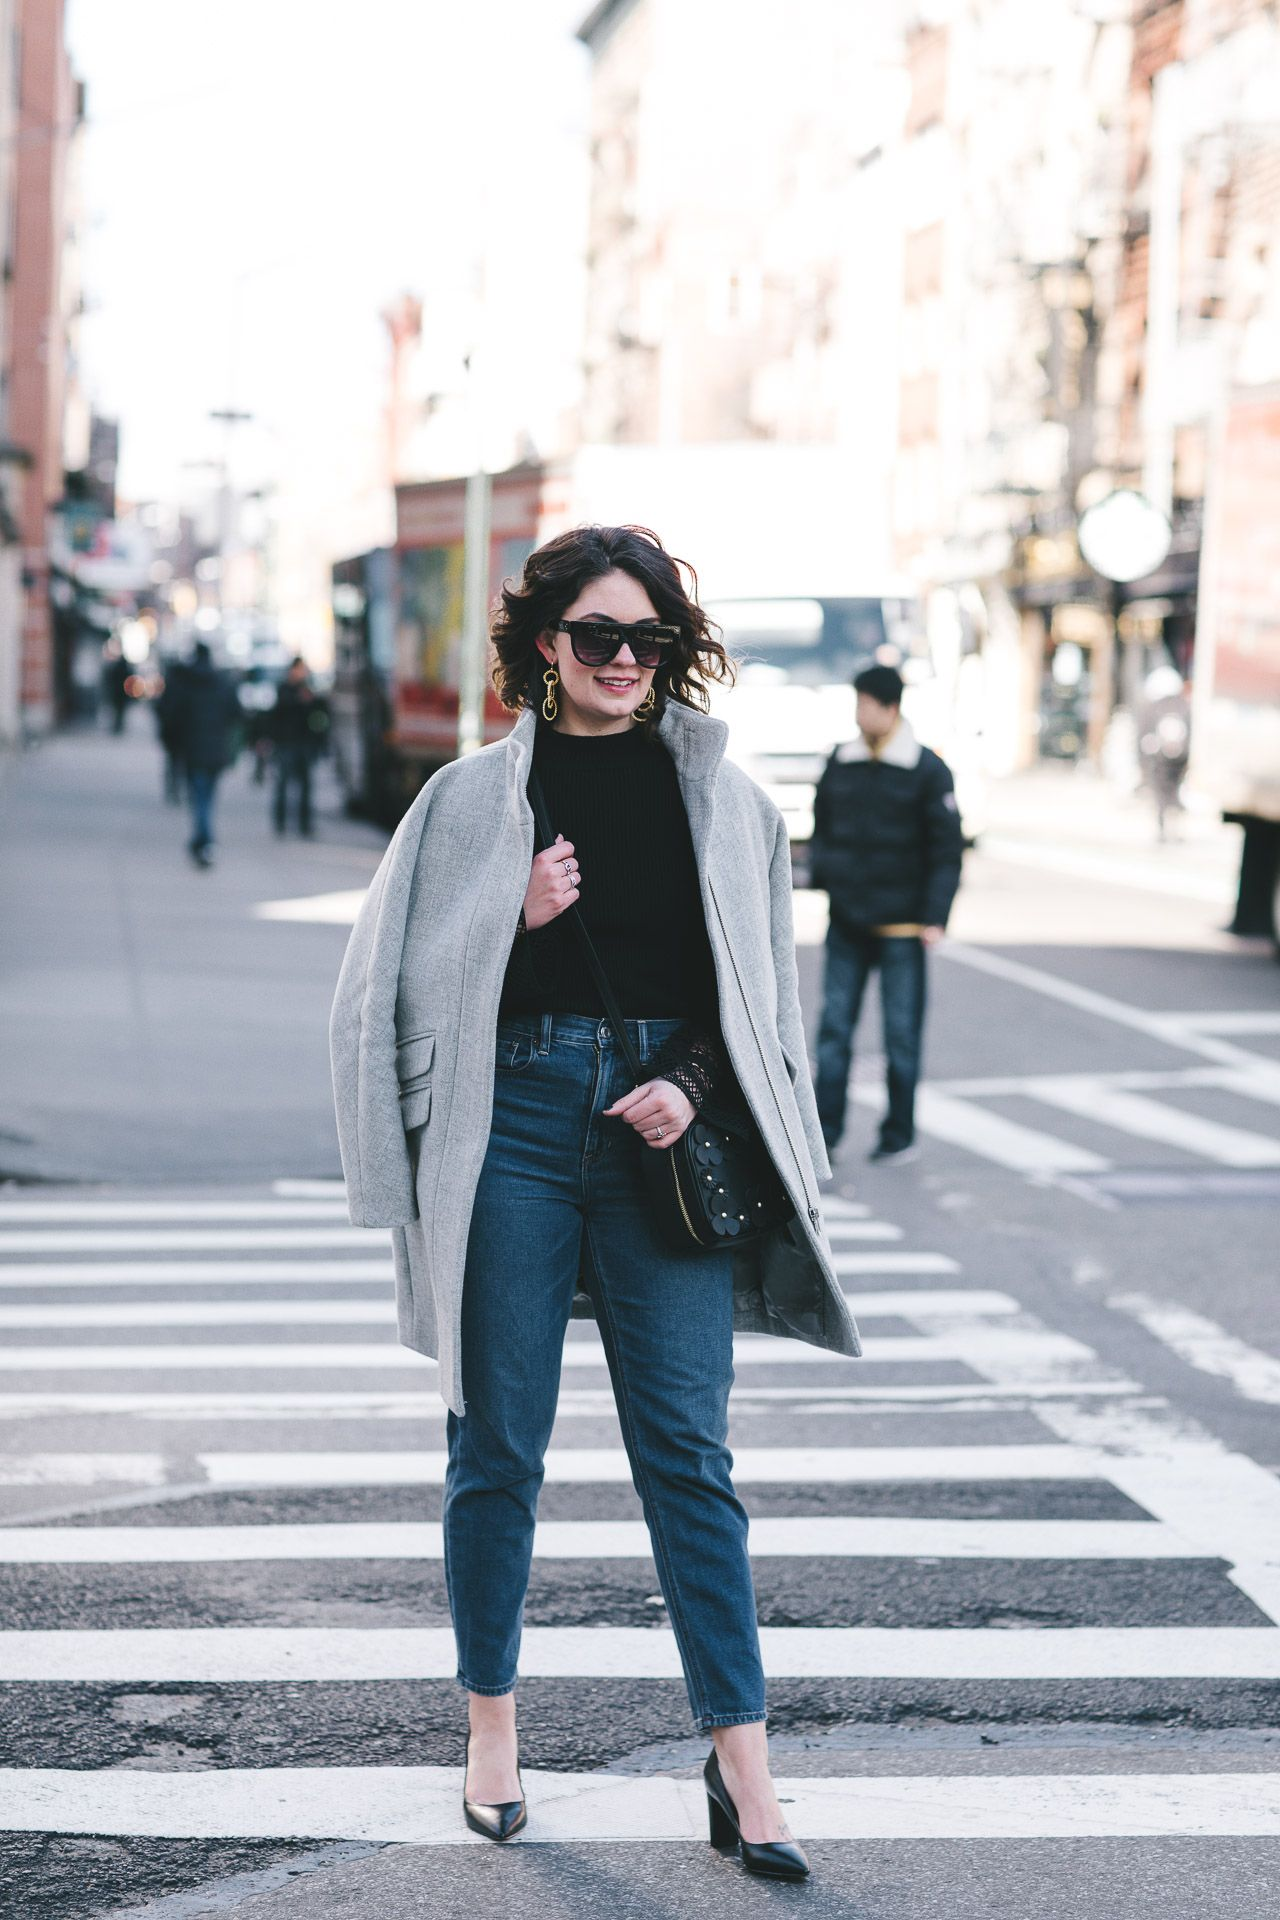 street style 101, street style, city chic, ivanka trump, mom jeans, how 2 style mom jeans